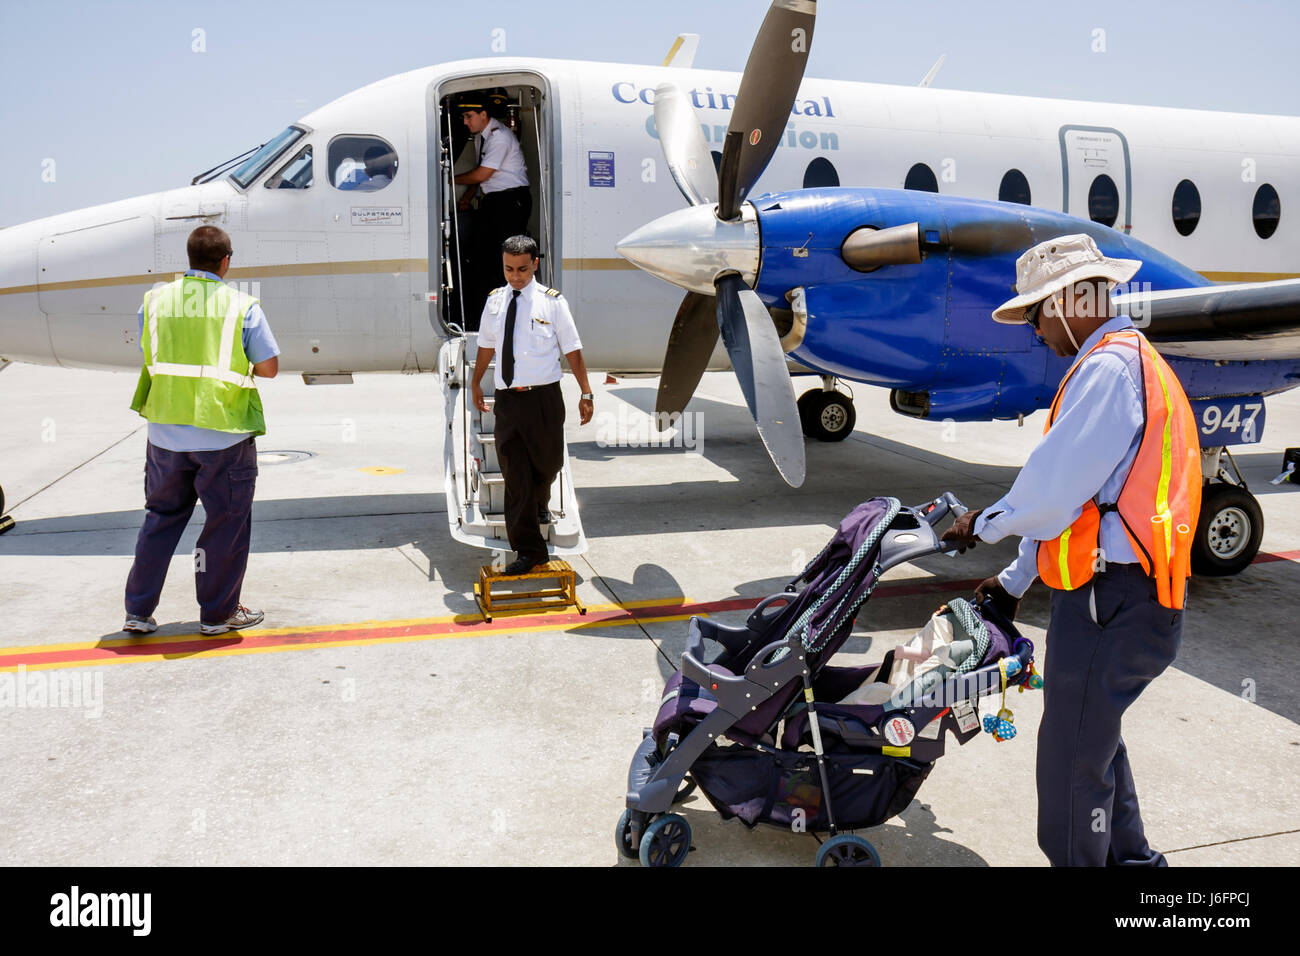 Tampa Florida Tampa Airport Continental Airlines Connection commuter flight aircraft tarmac man men co-pilot ground - Stock Image